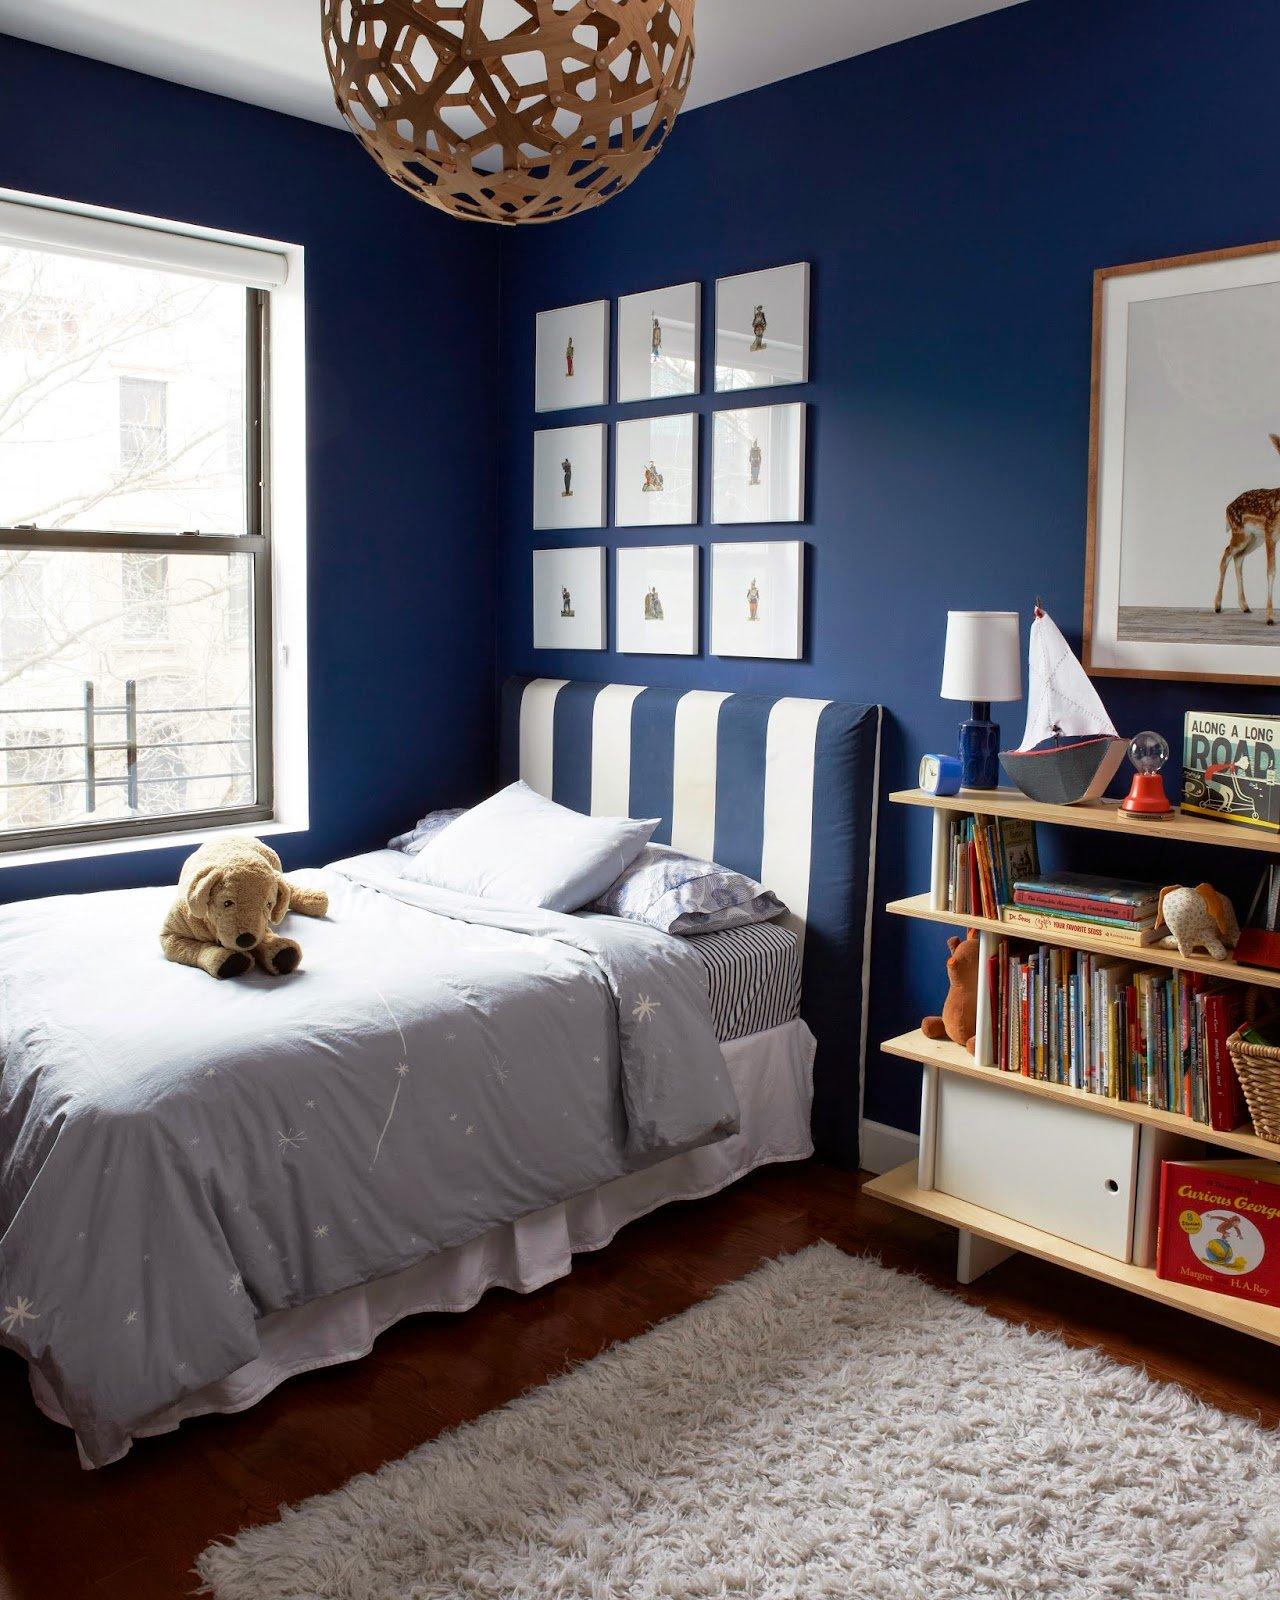 Bedroom Paint Ideas With Blue help! which bedroom paint color would you choose? | a cup of jo